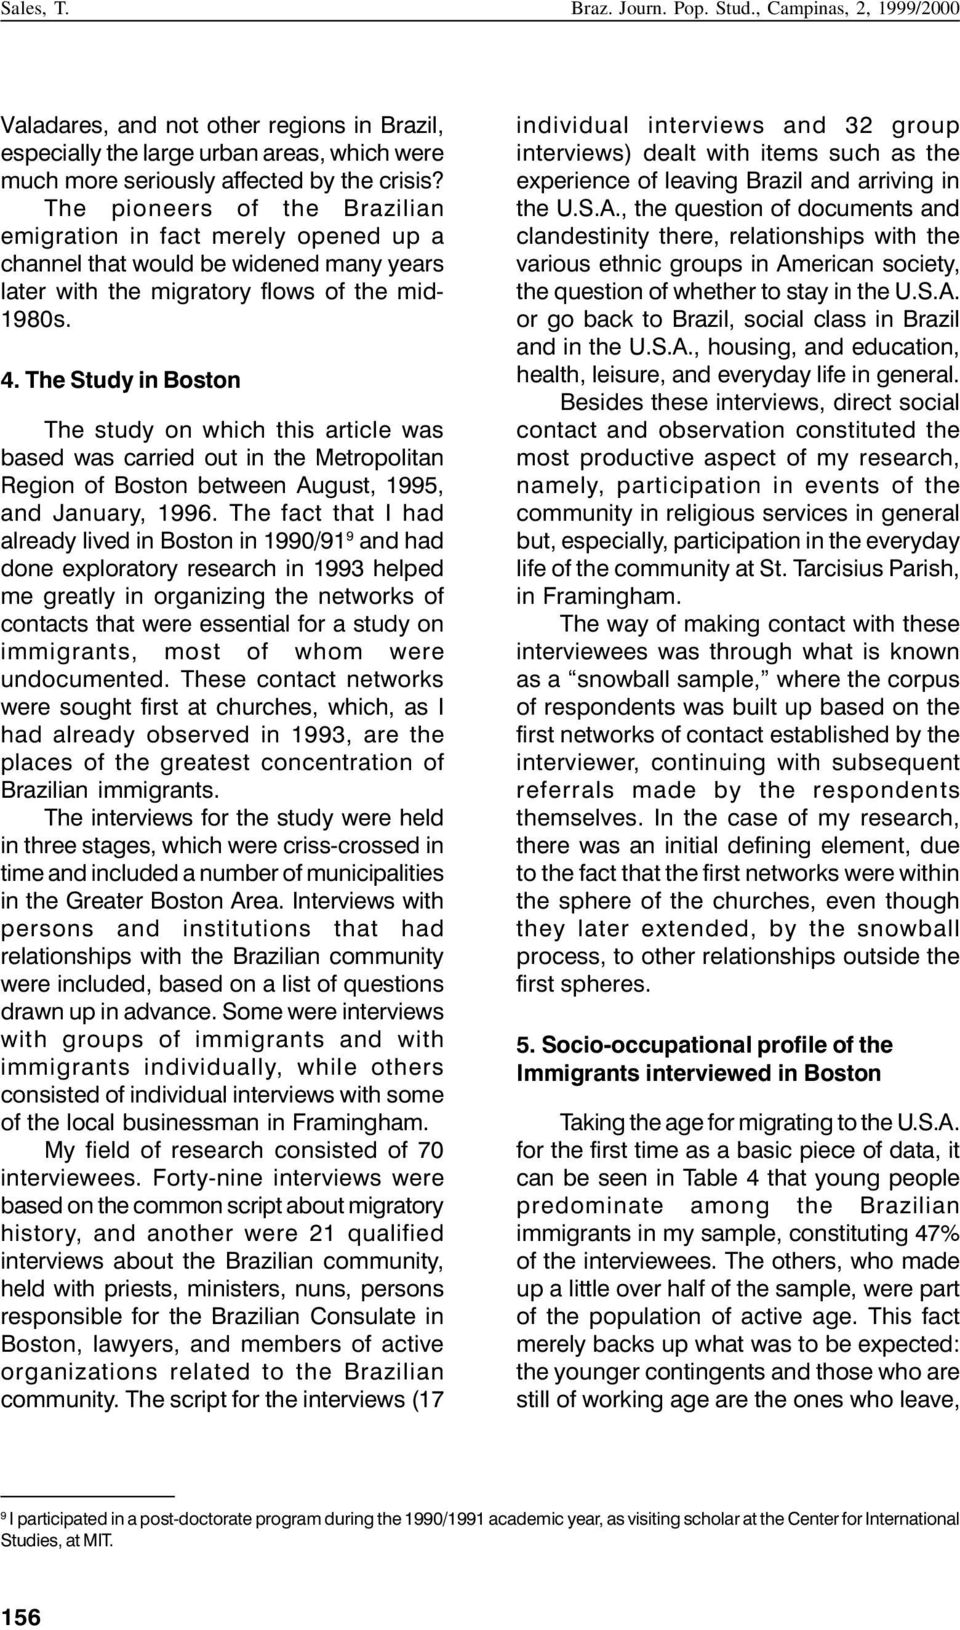 The Study in Boston The study on which this article was based was carried out in the Metropolitan Region of Boston between August, 1995, and January, 1996.